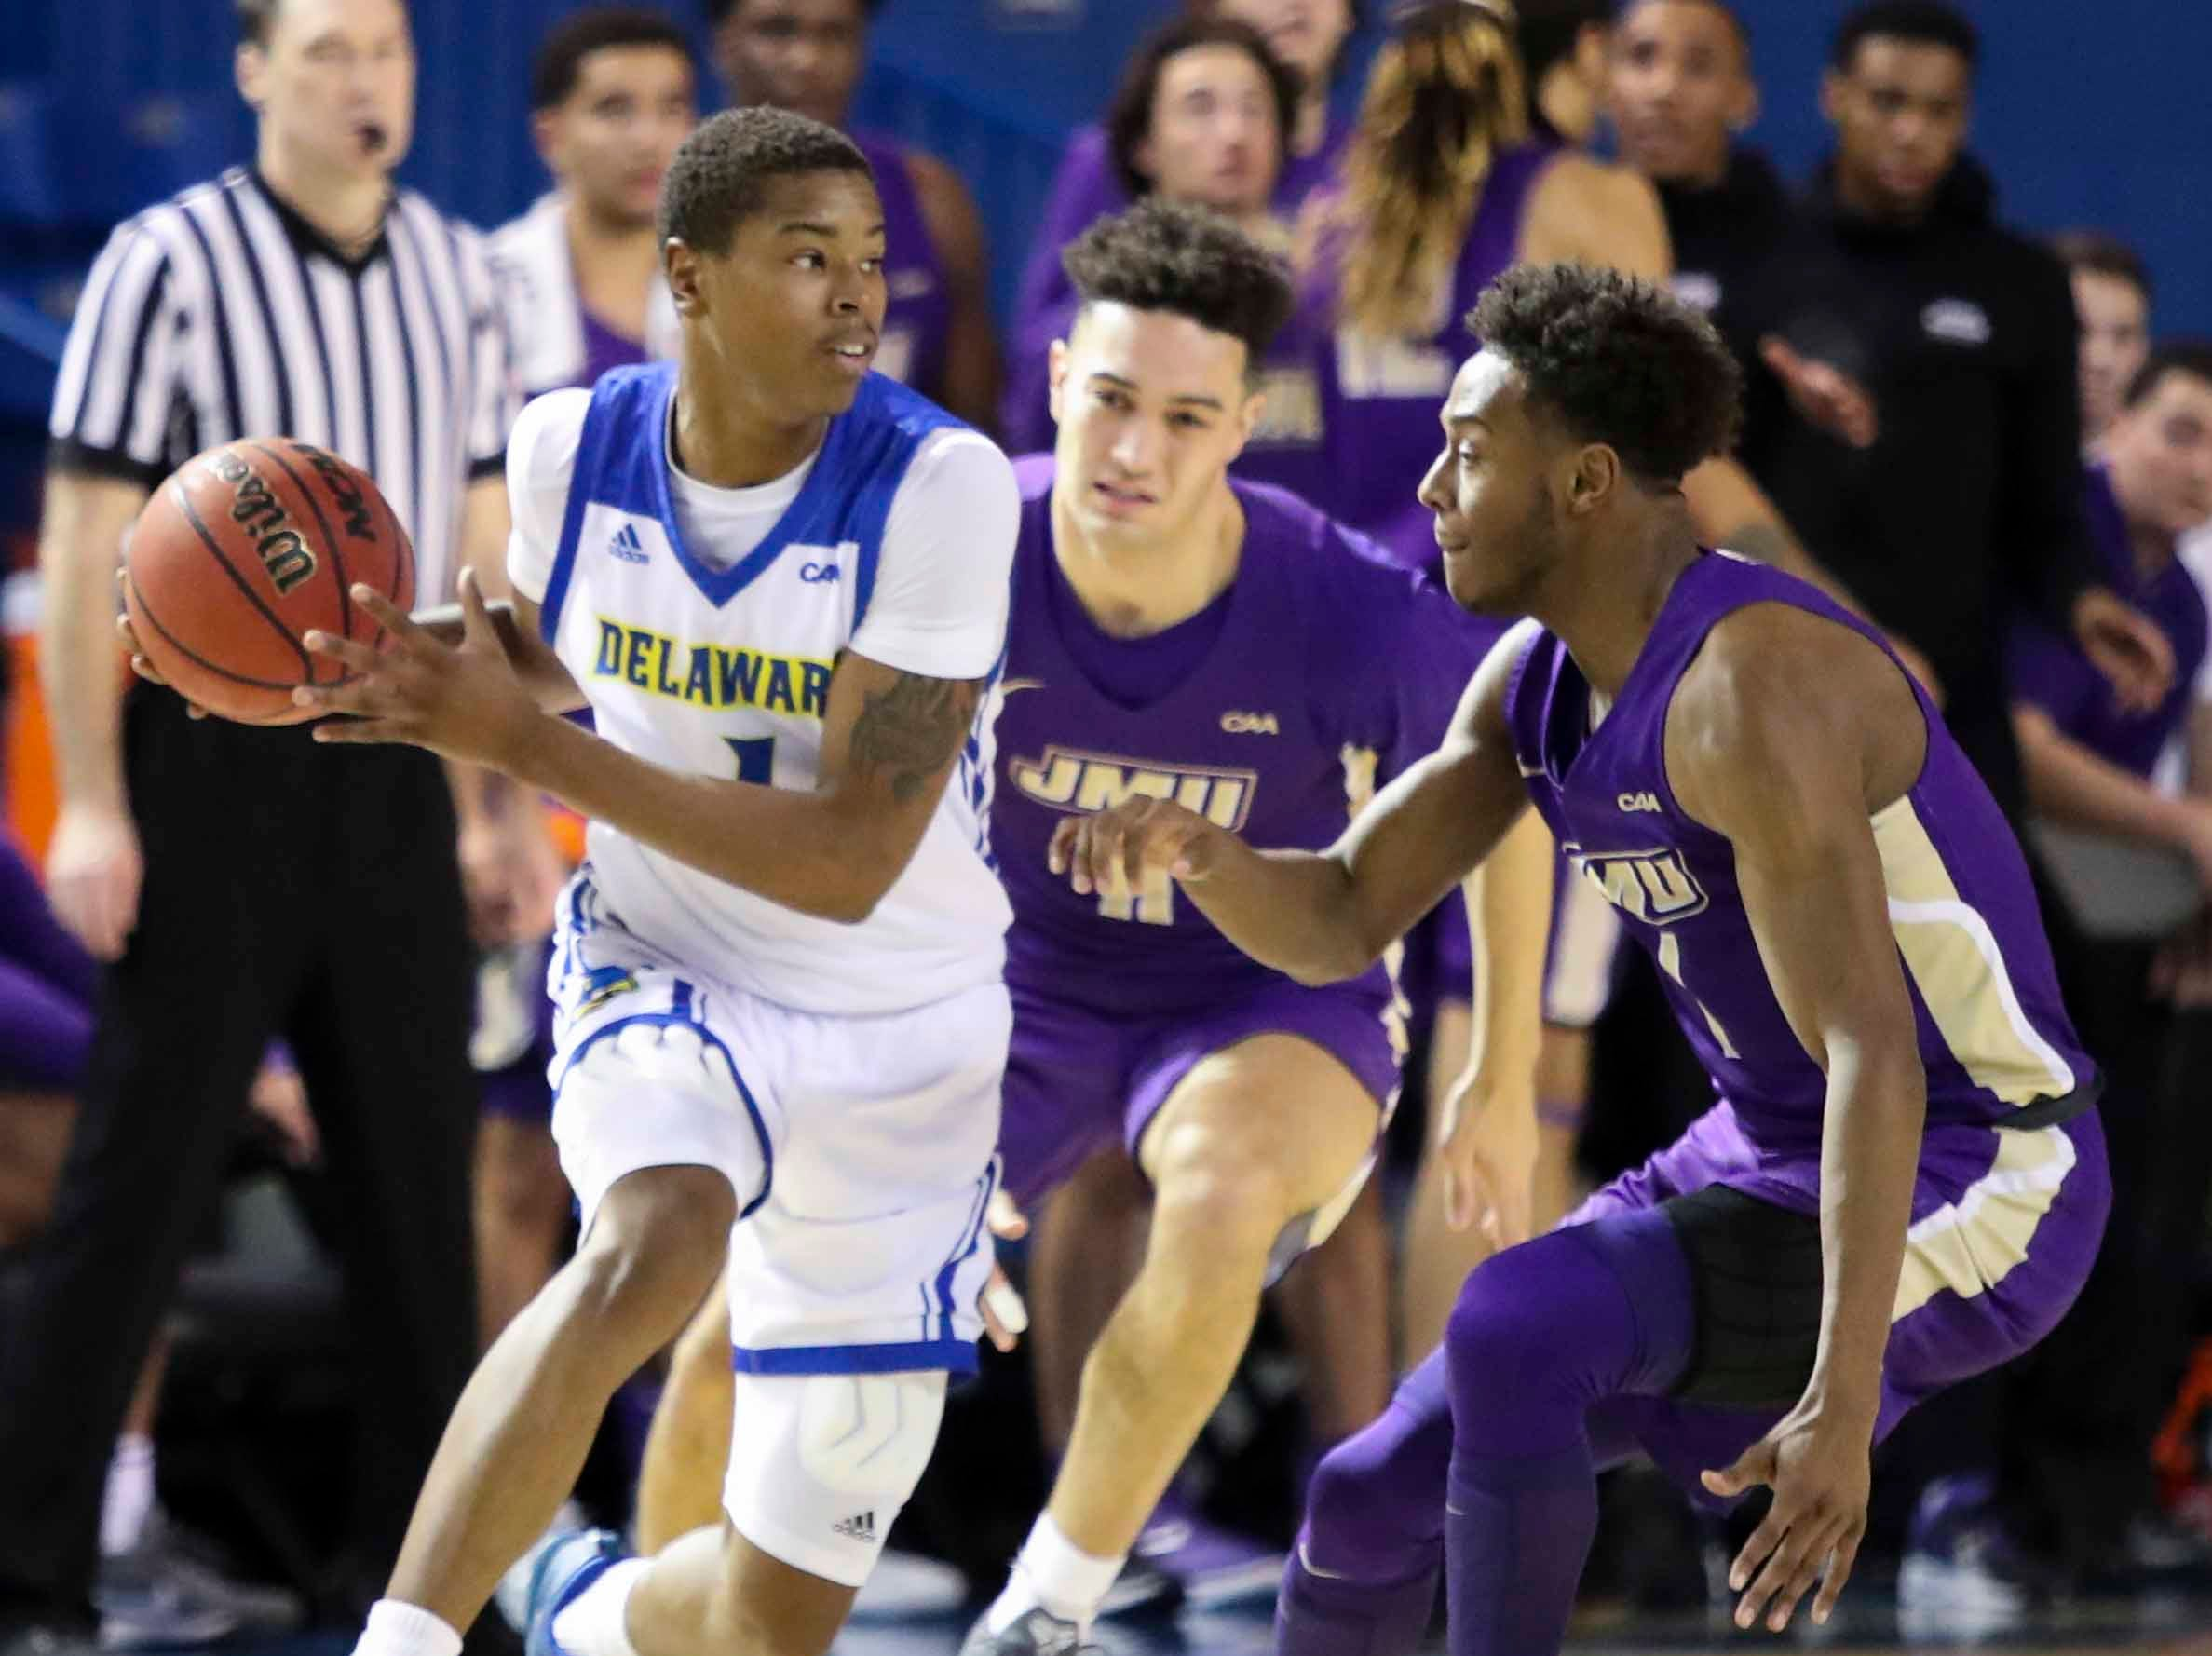 Delaware's Kevin Anderson works against James Madison's Zach Jacobs (center) and Matt Lewis in the first half at the Bob Carpenter Center Thursday.